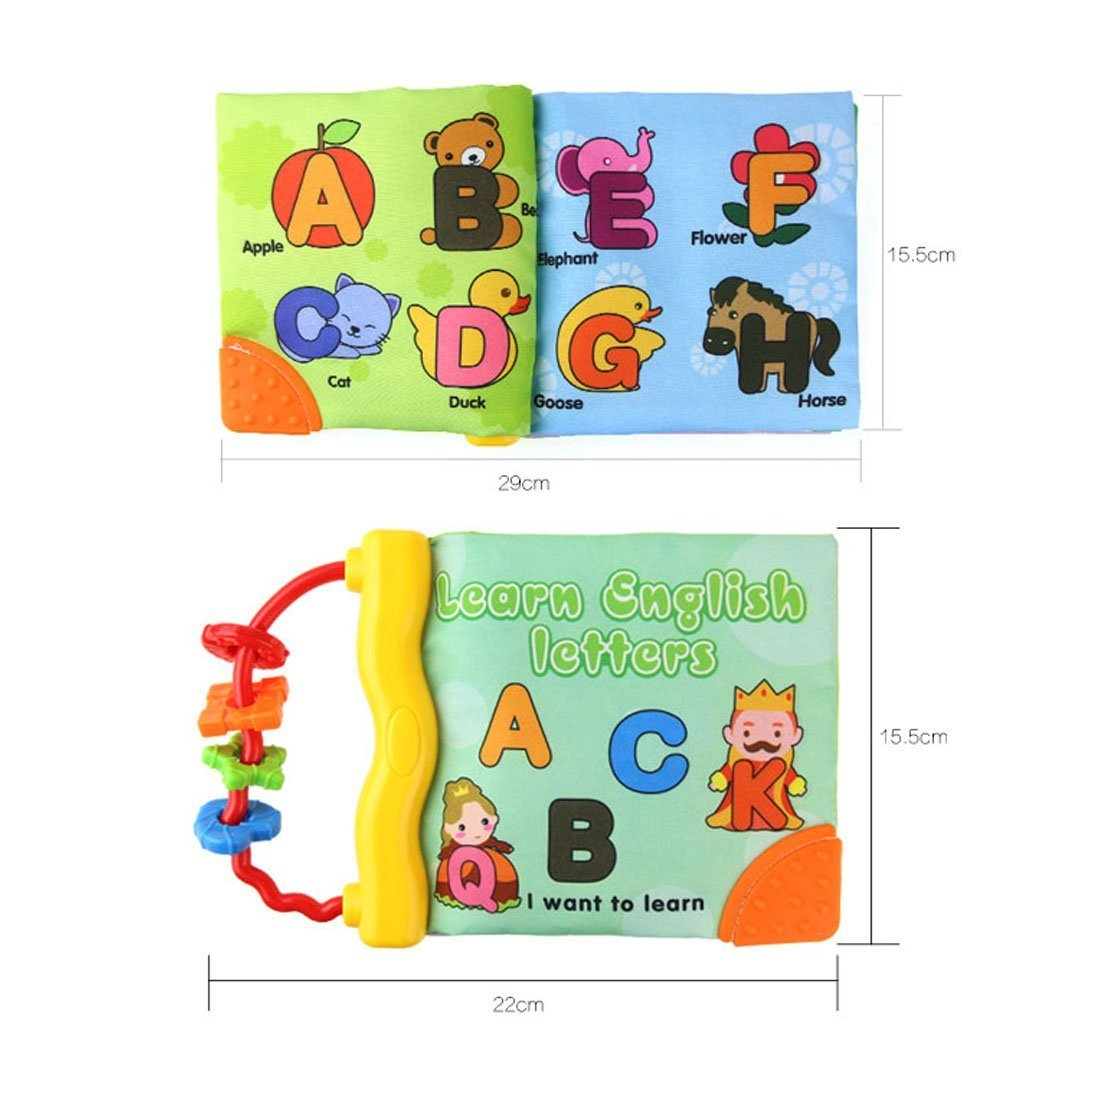 Baby Earlyears Tactile and Educational Non-toxic Cloth Soft Book-Teether Rings-Infant Learning toy English Letters A B C - Squeak, Rattle, Crinkle toddler Activity Gift by Tangomall (Image #1)